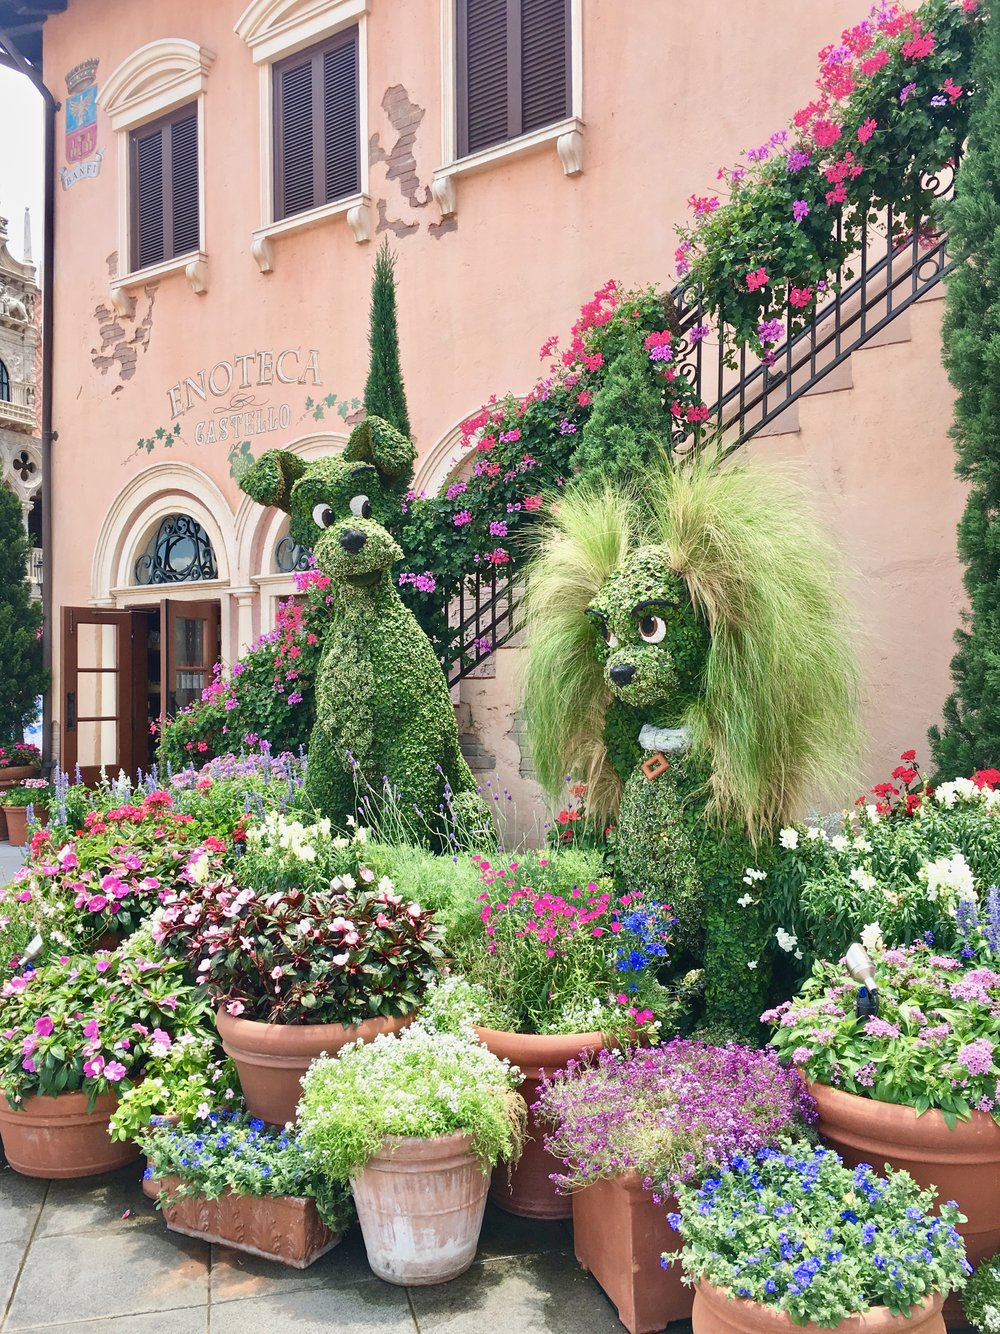 epcot-italy-lady-tramp.jpg